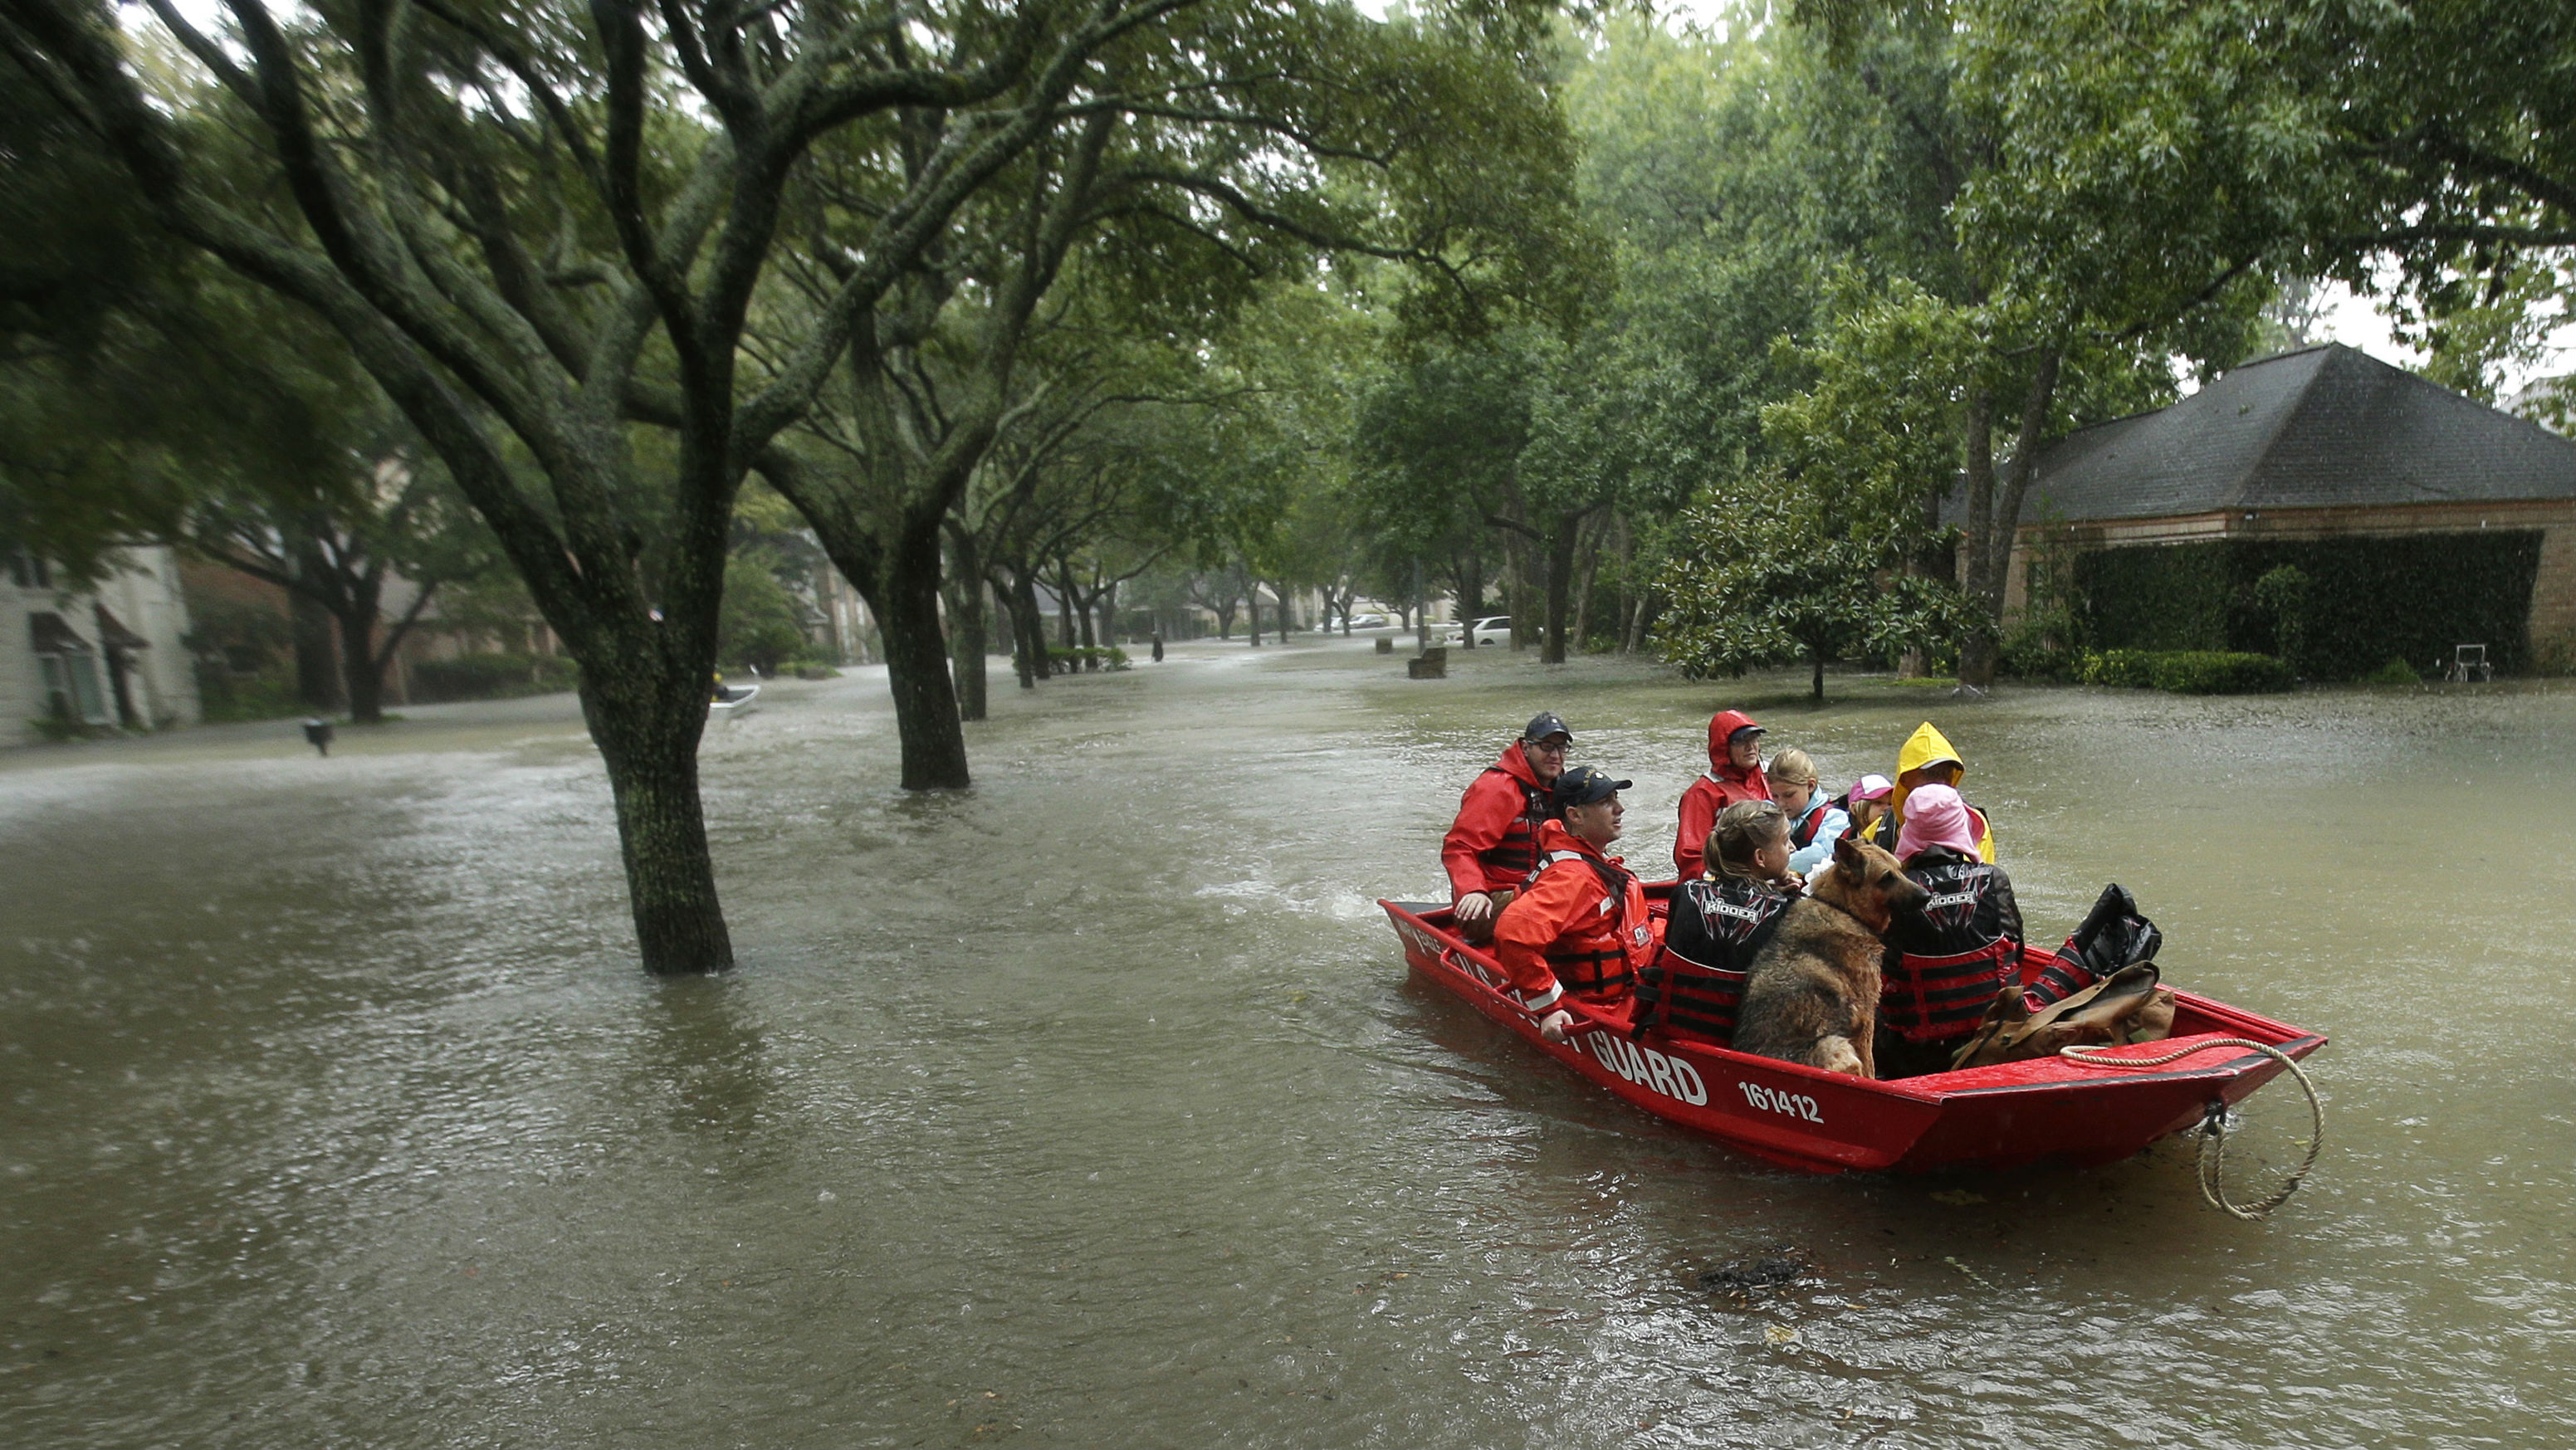 a family floating in a raft with a dog in the floods in Texas.